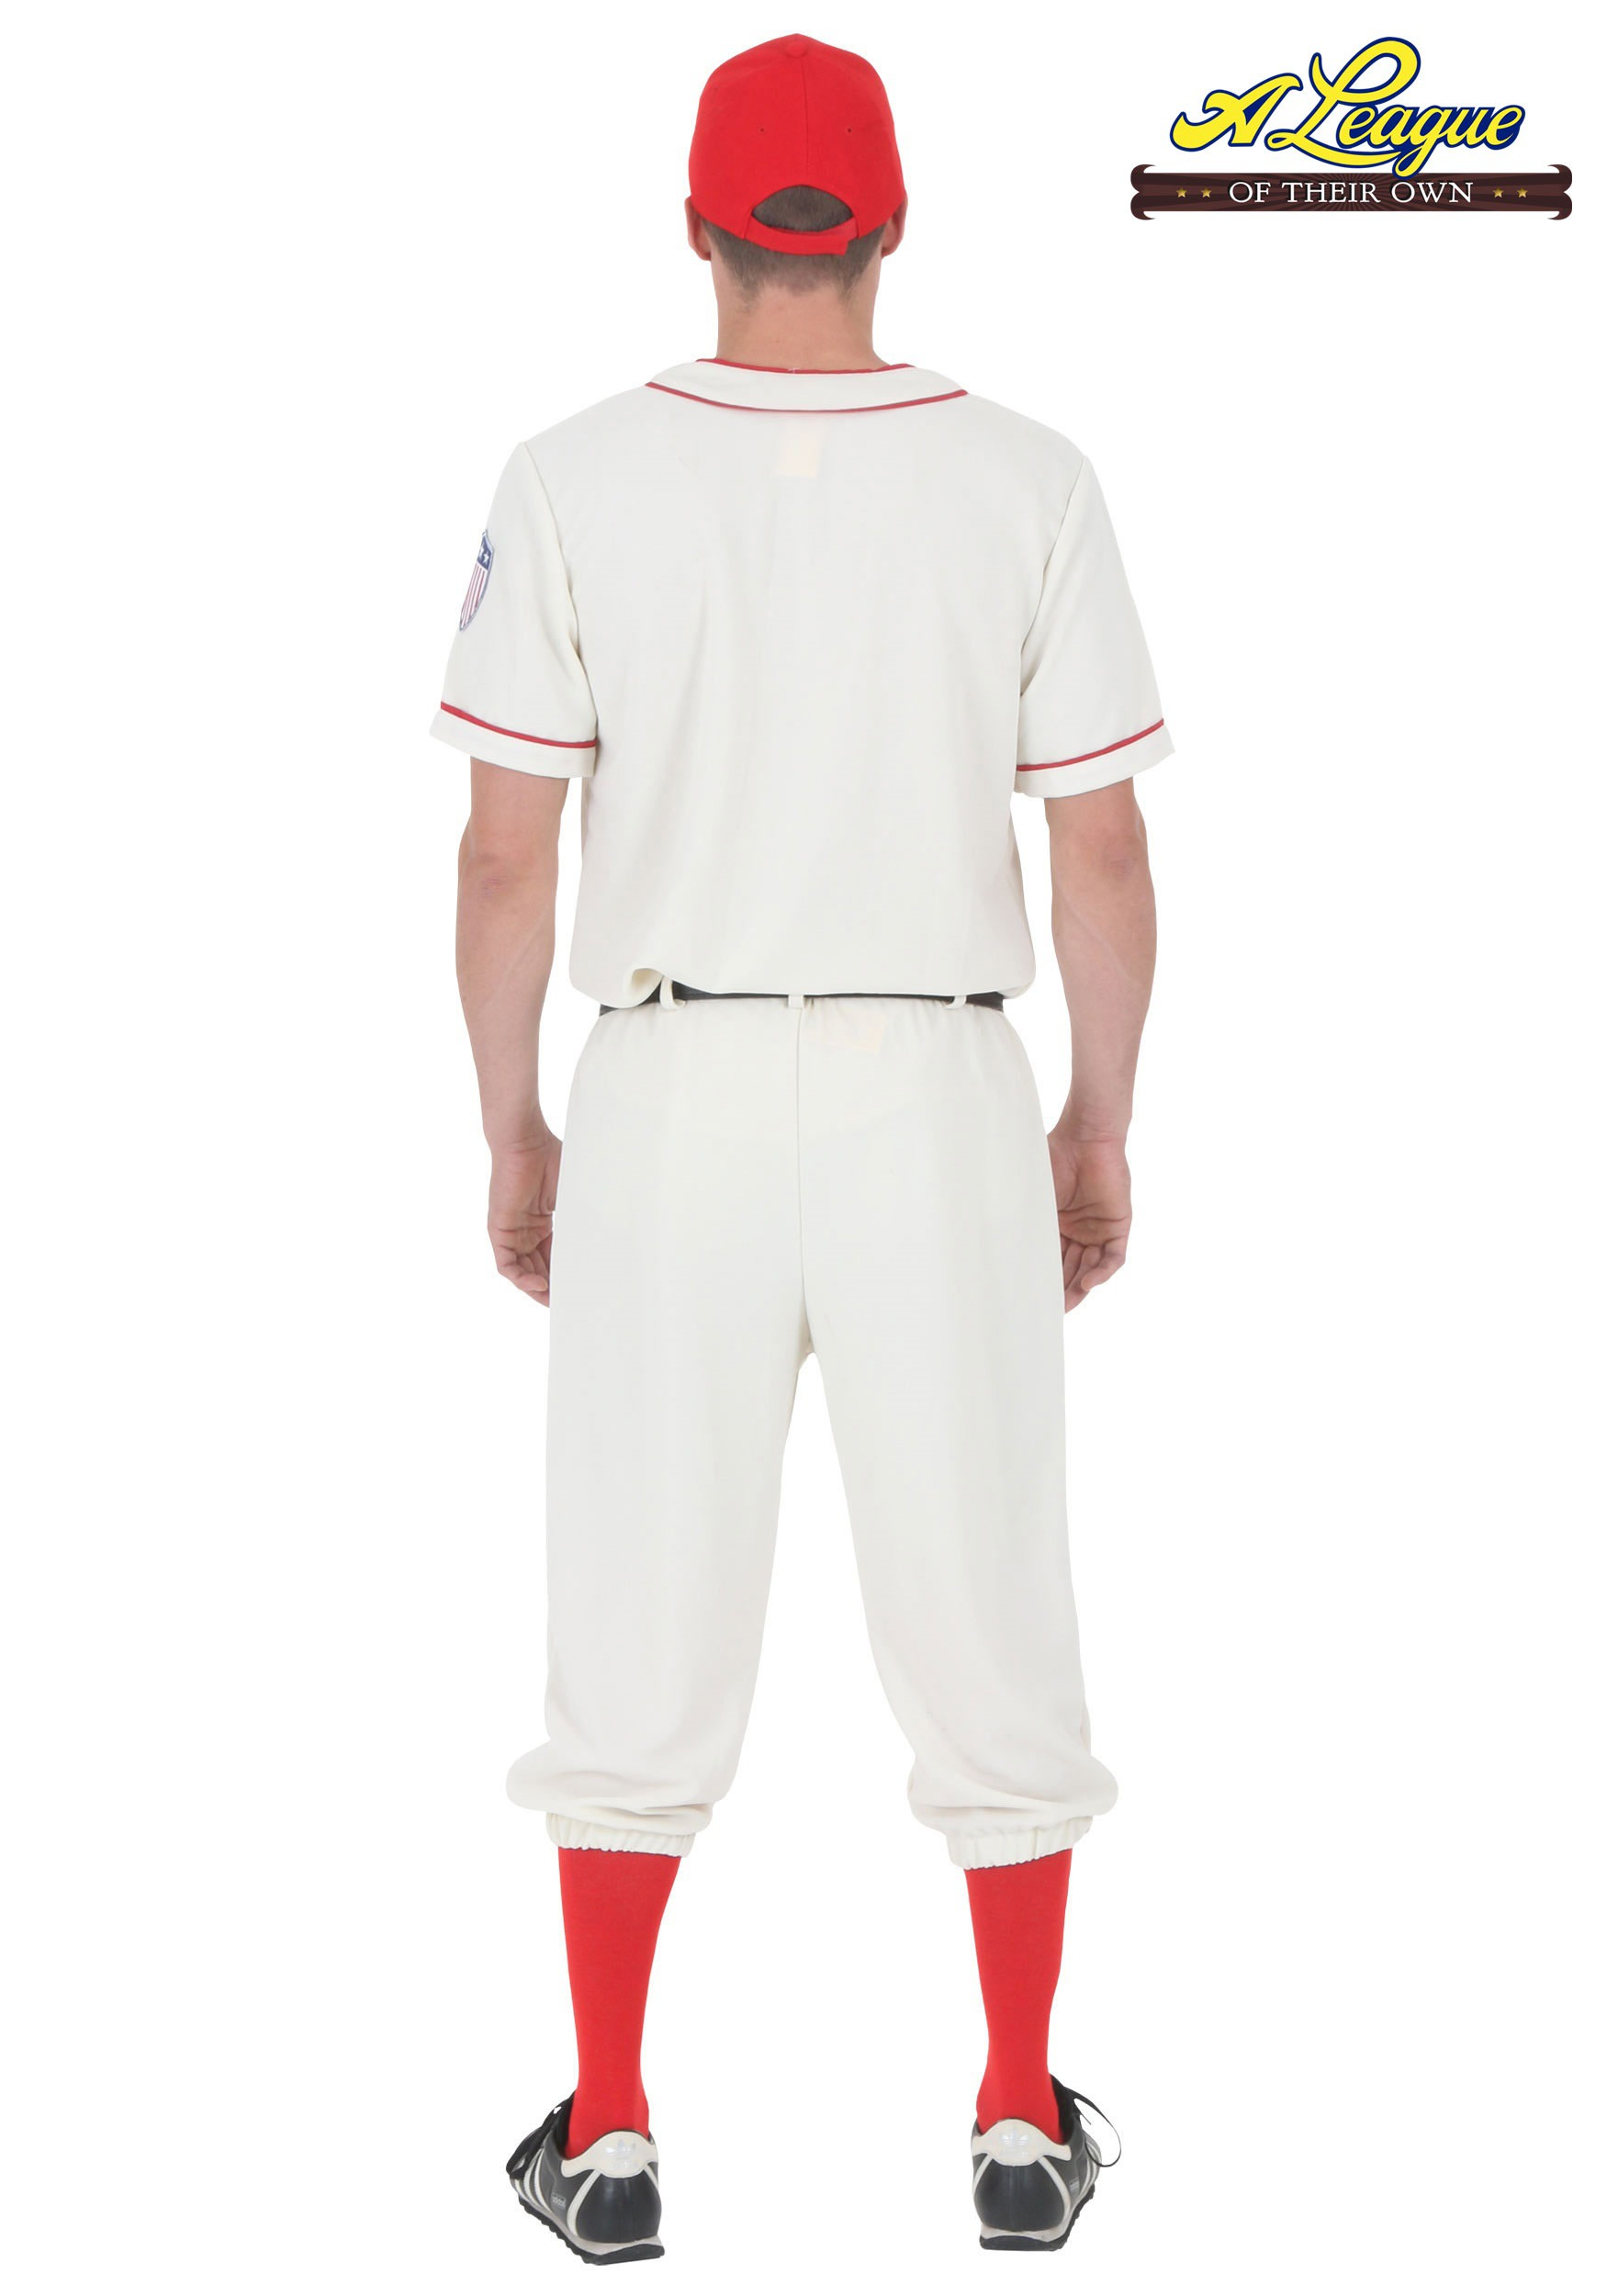 A League Of Their Own Halloween Costume | Men S Coach Jimmy Costume From A League Of Their Own